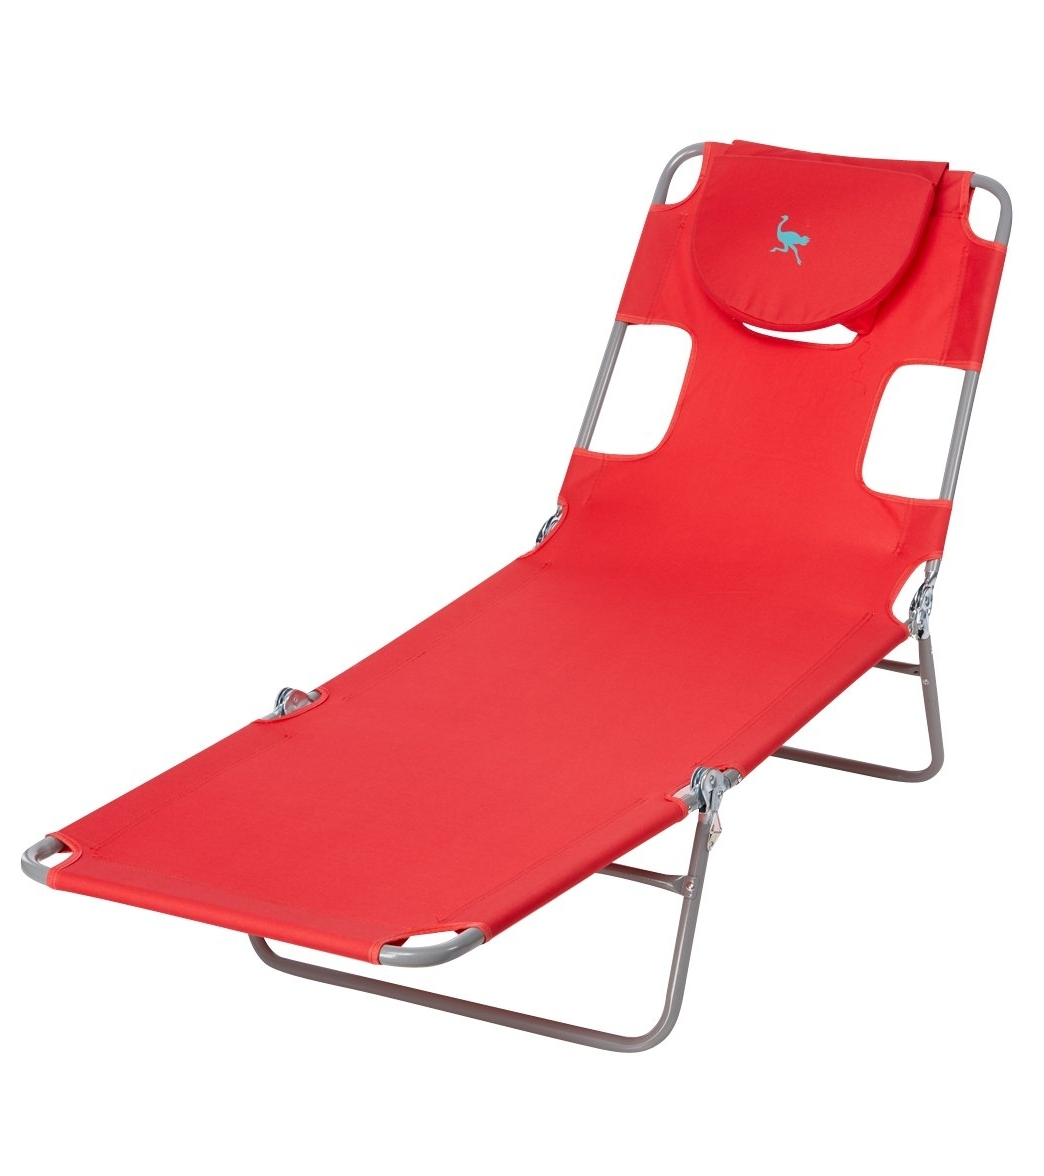 Ostrich Chaise Lounges For Most Current Ostrich Face Down Chaise Lounge At Swimoutlet – Free Shipping (View 12 of 15)